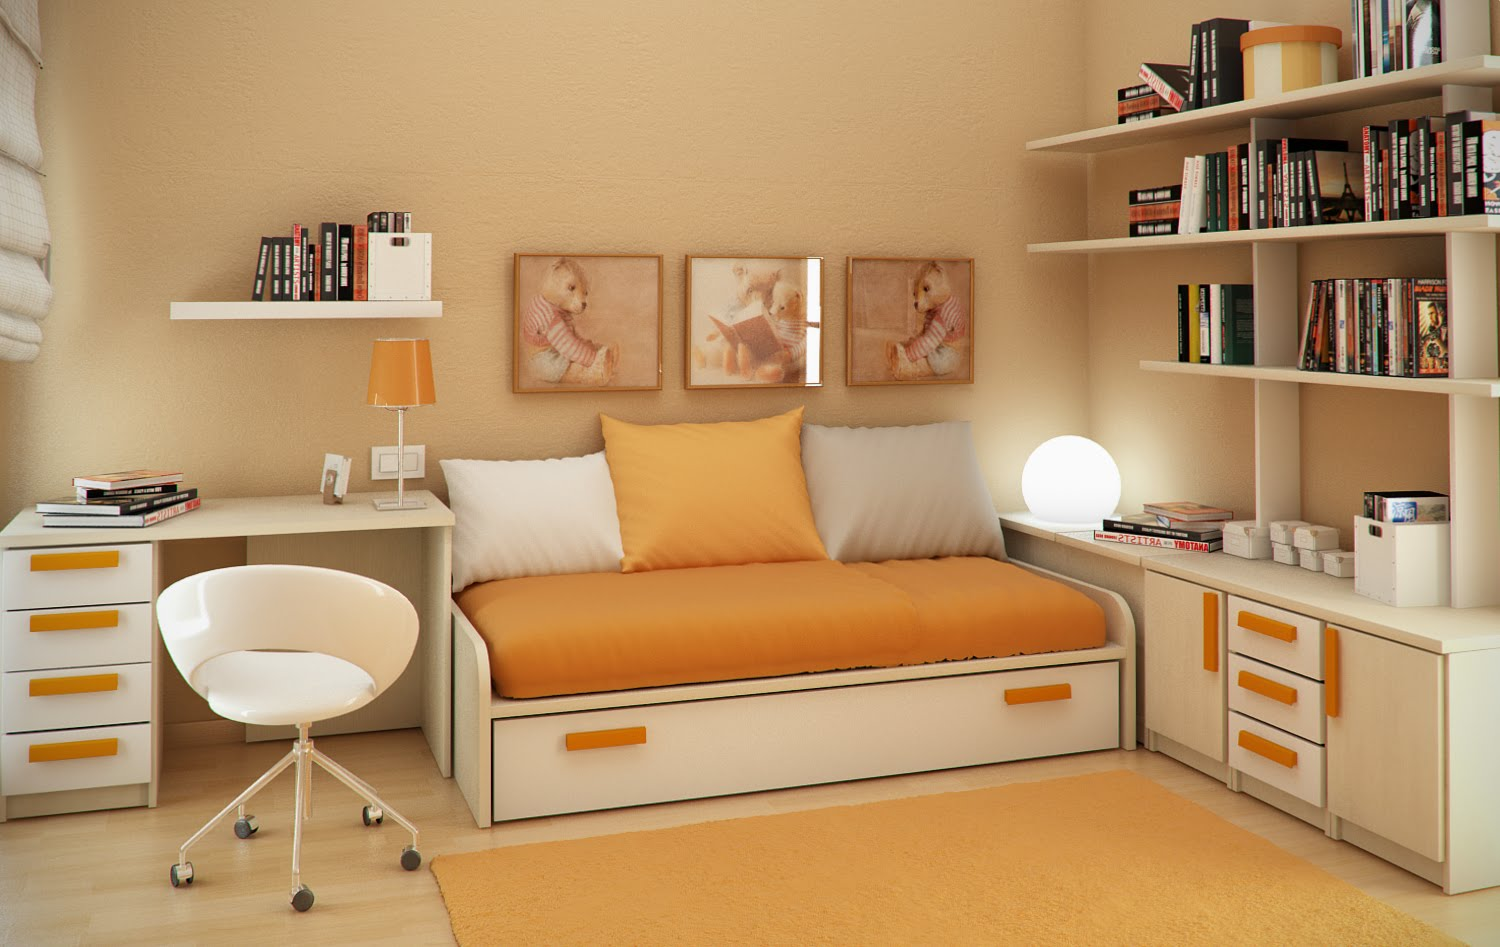 Kid Room Ideas Simple Of Small Study Room Design Images